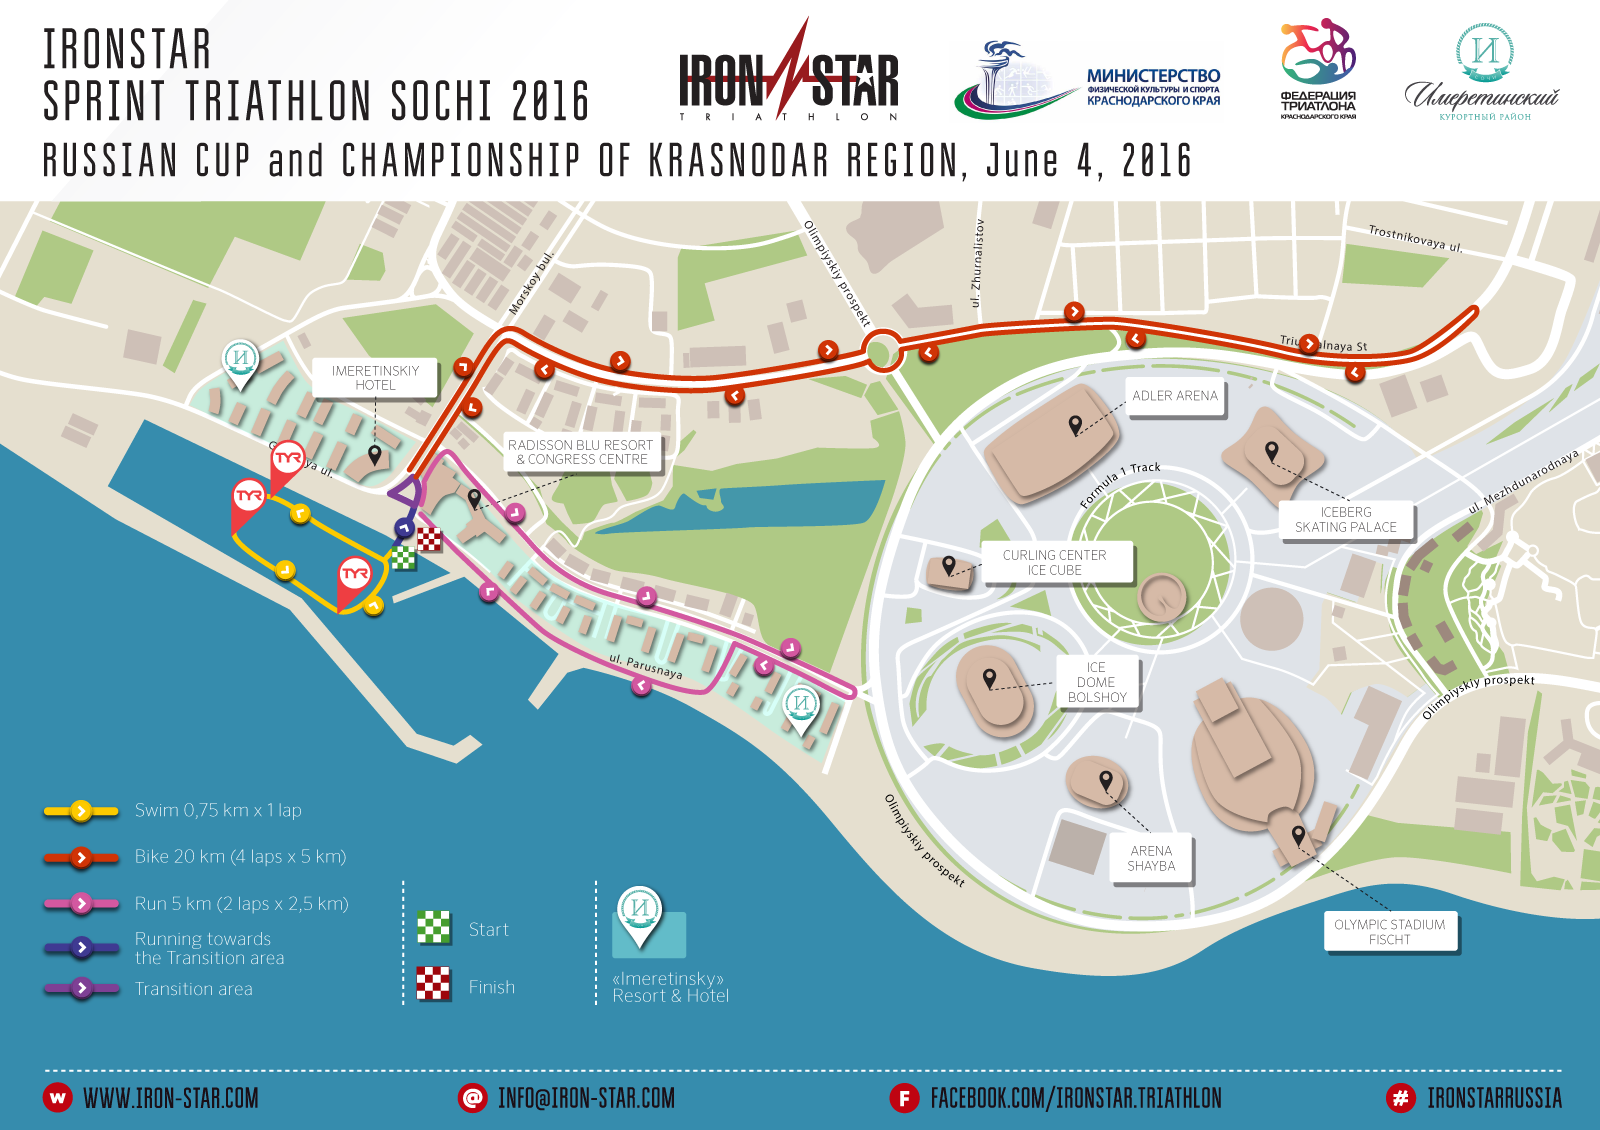 Route of IRONSTAR SPRINT SOCHI 2016